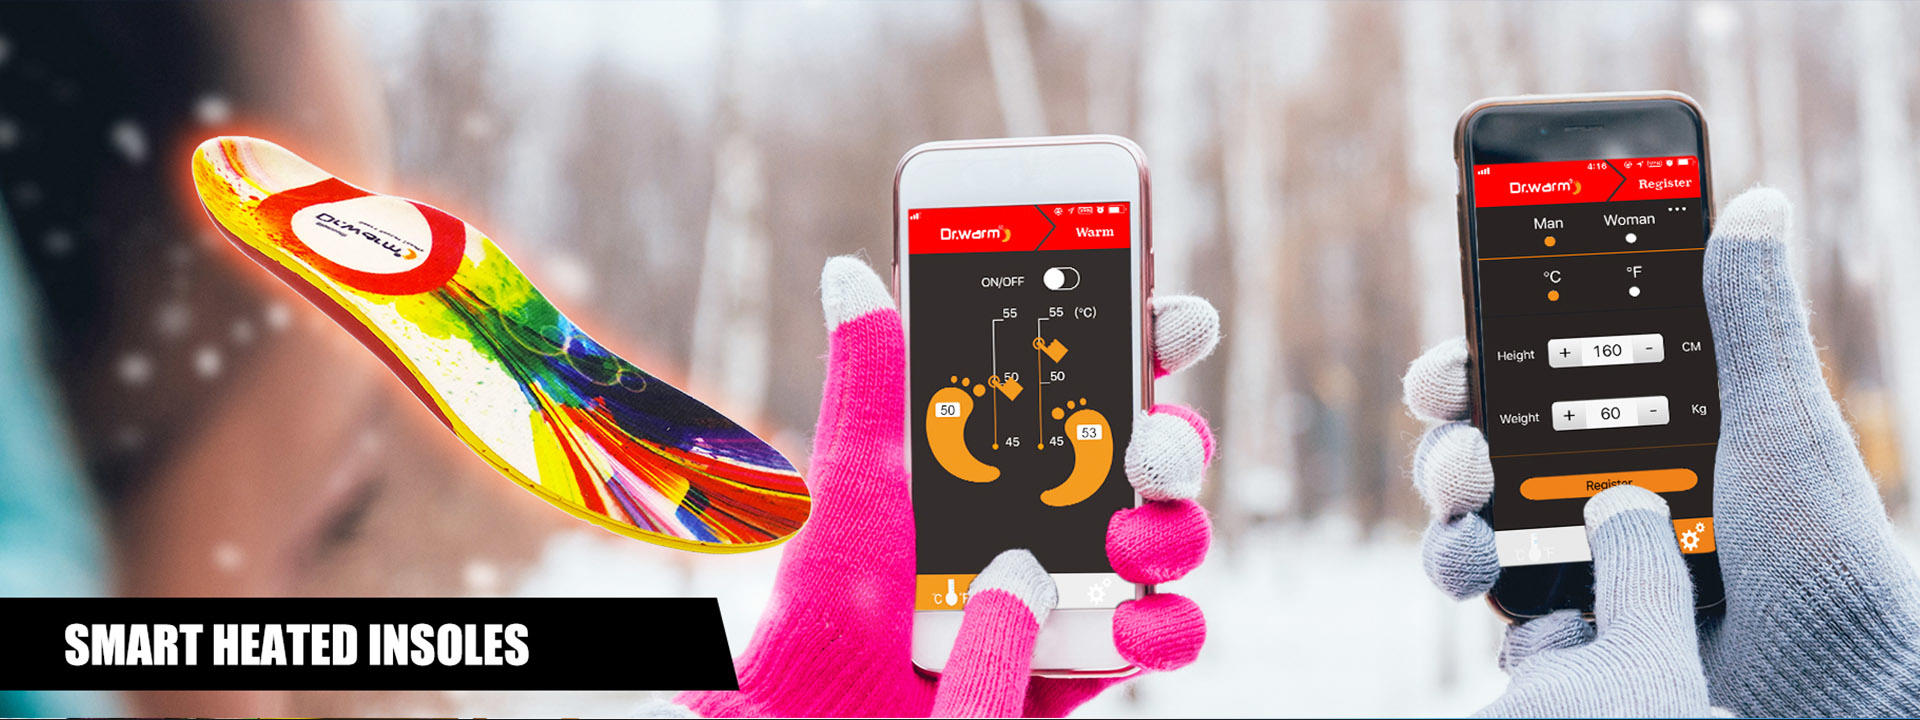 S-King-Wireless Heated Insoles, Heated Insoles Smartphone- Controlled Wireless